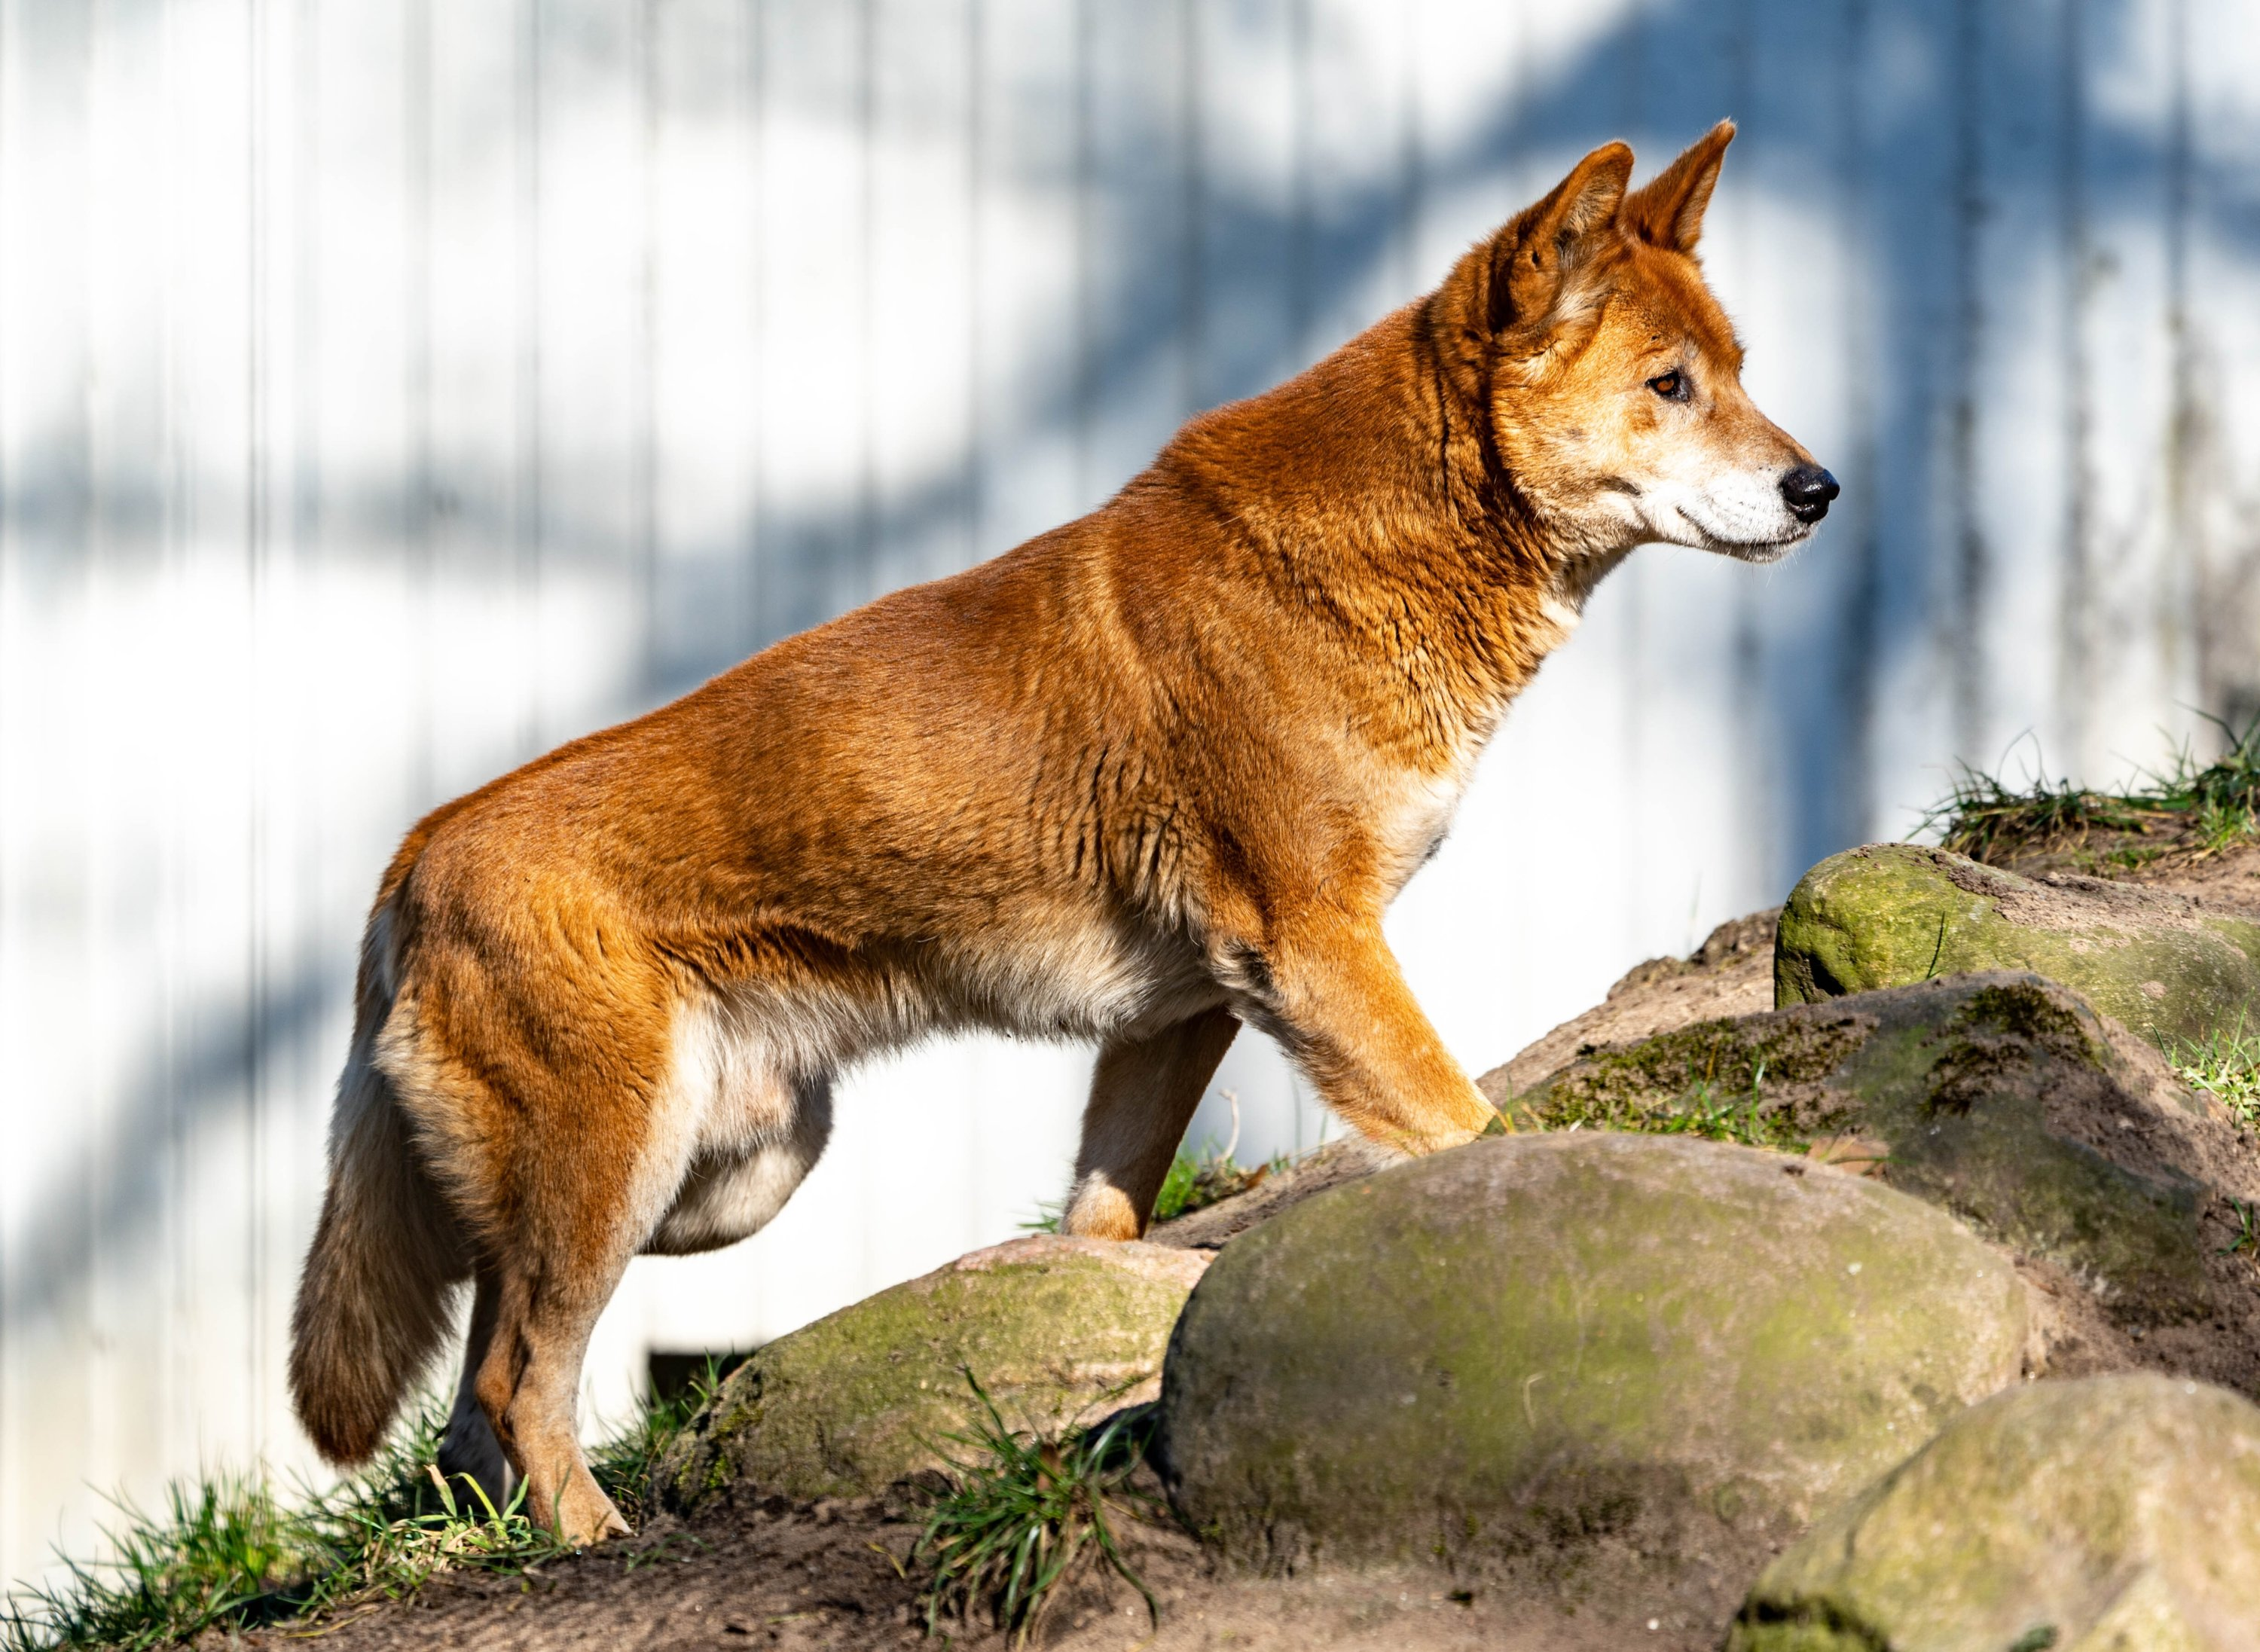 """A male dingo named """"Kami,"""" walks through his enclosure atNeumünster Zoo,Neumünster, Germany, on March 5, 2021. (Getty Images)"""